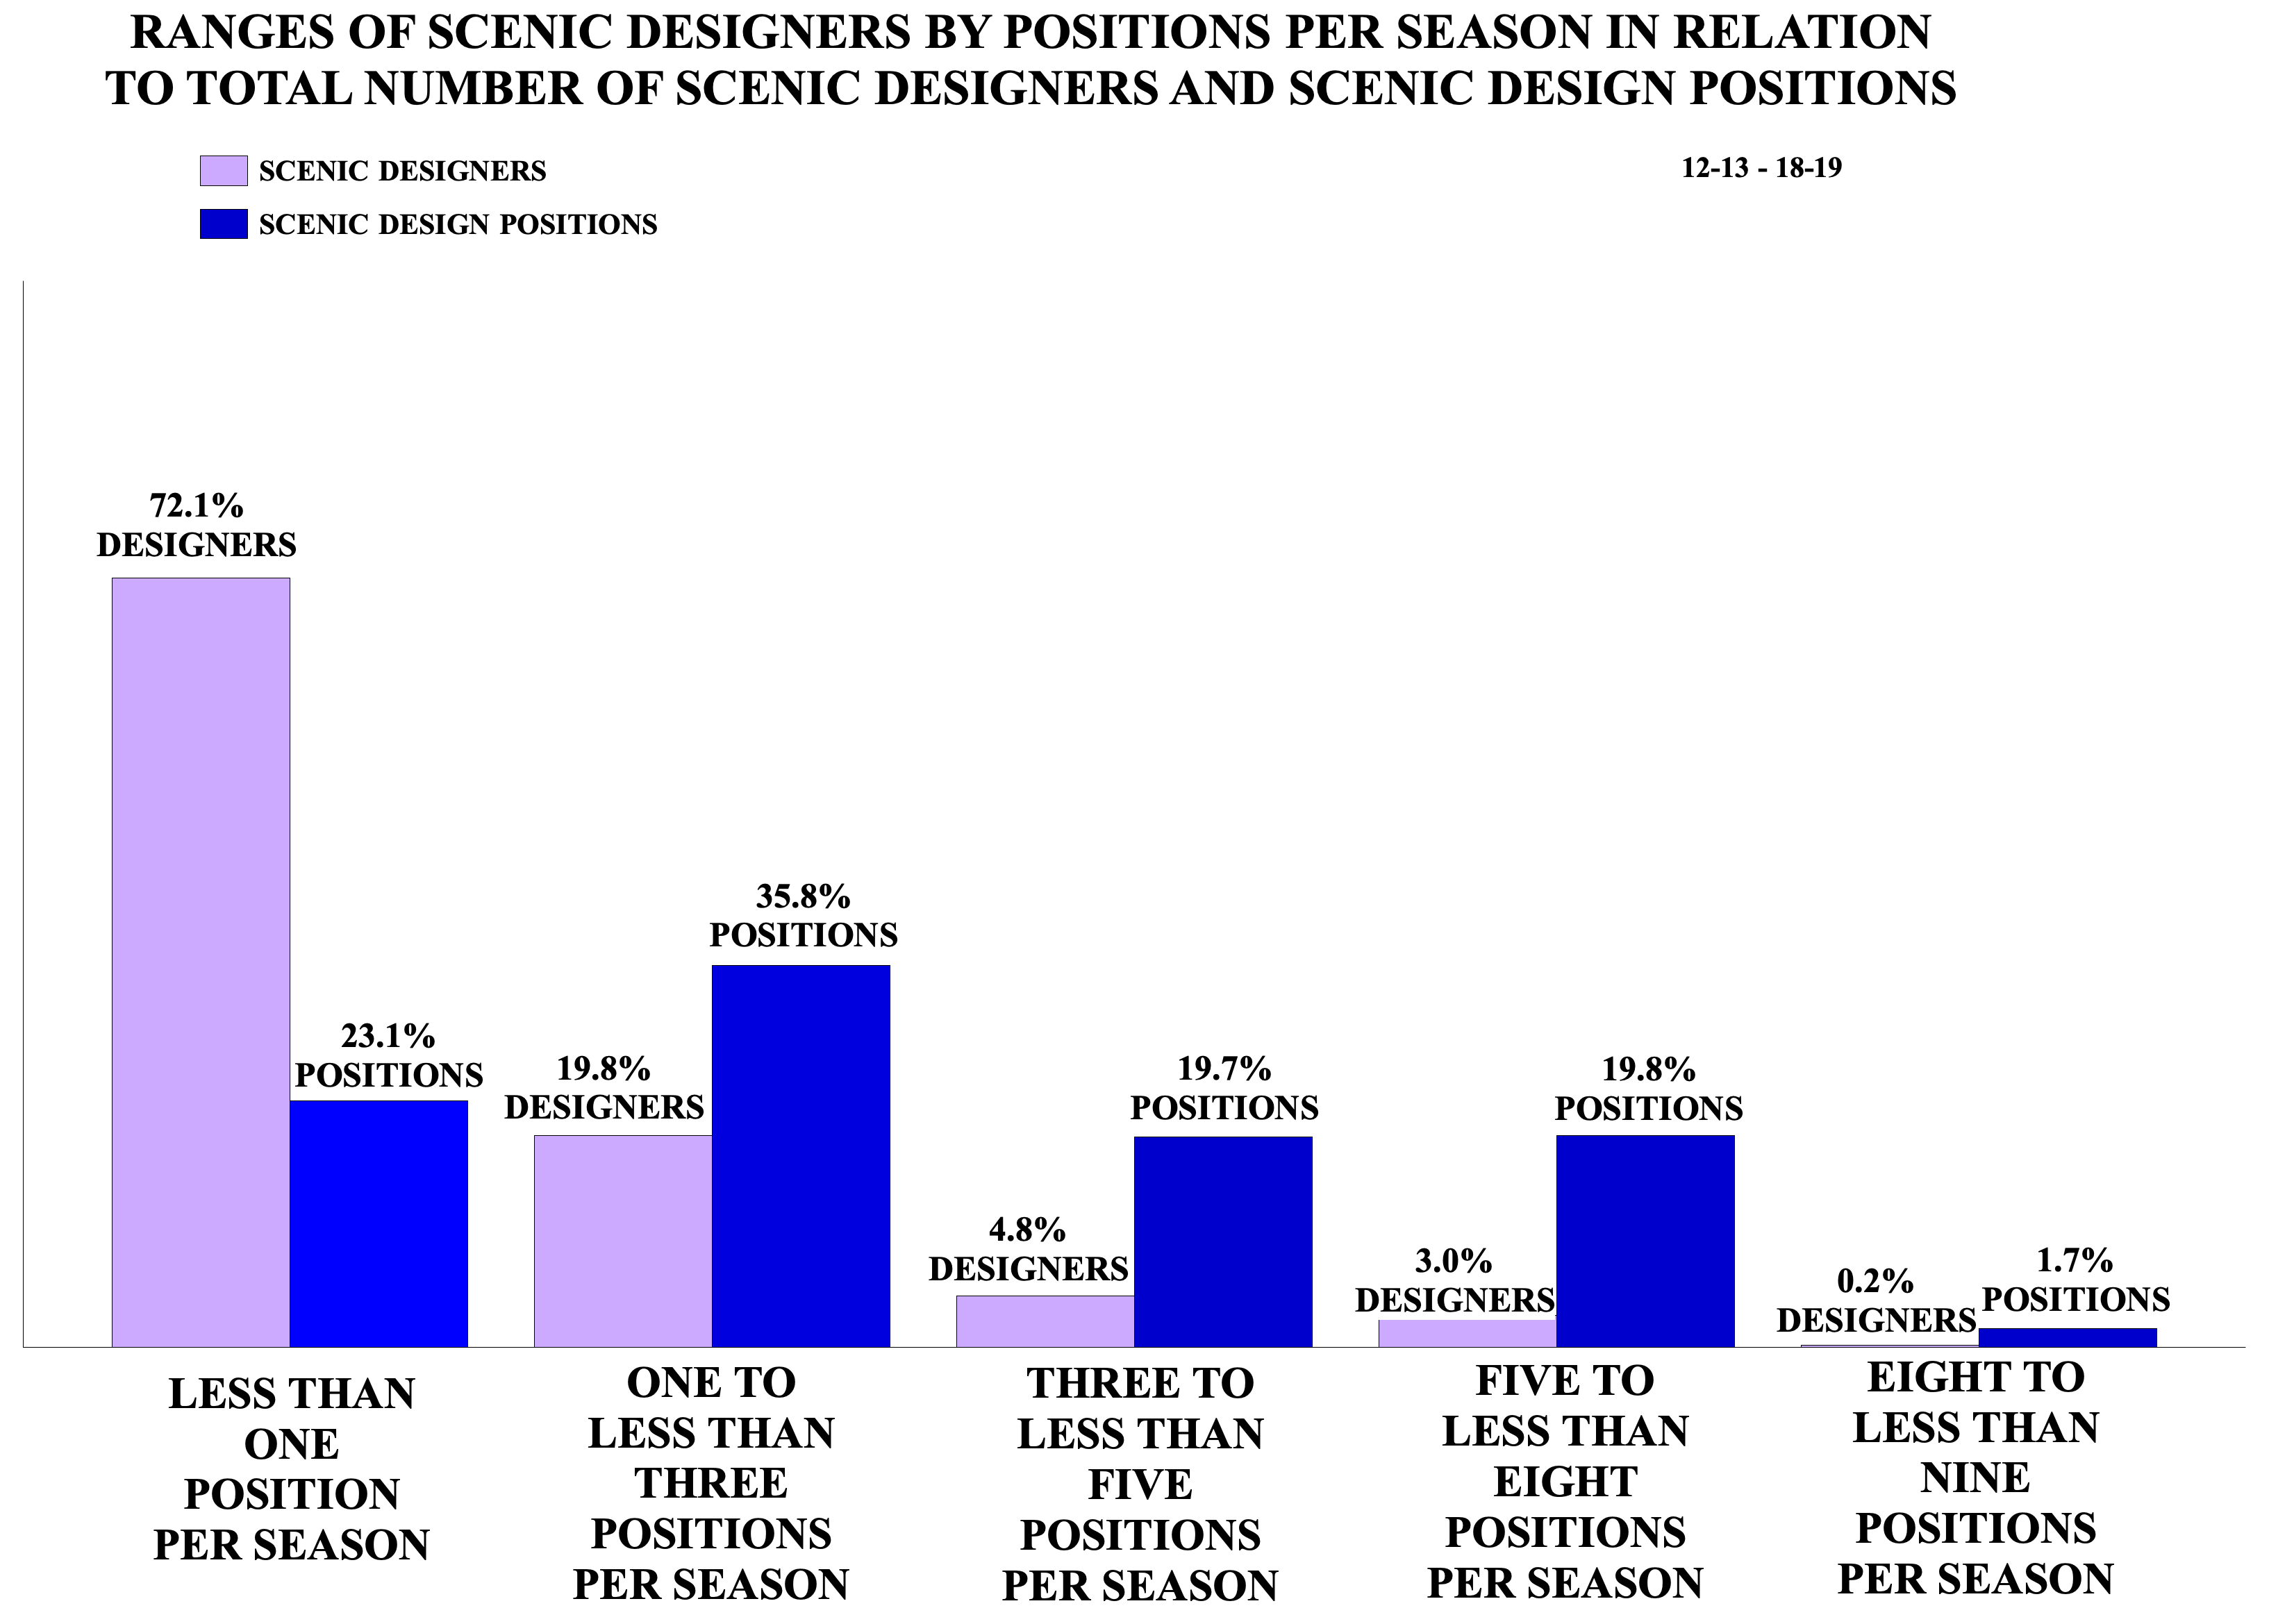 Ranges of Scenic Designers by Positions Per Season in Relation to Total Number of Scenic Designers and Scenic Design Positions